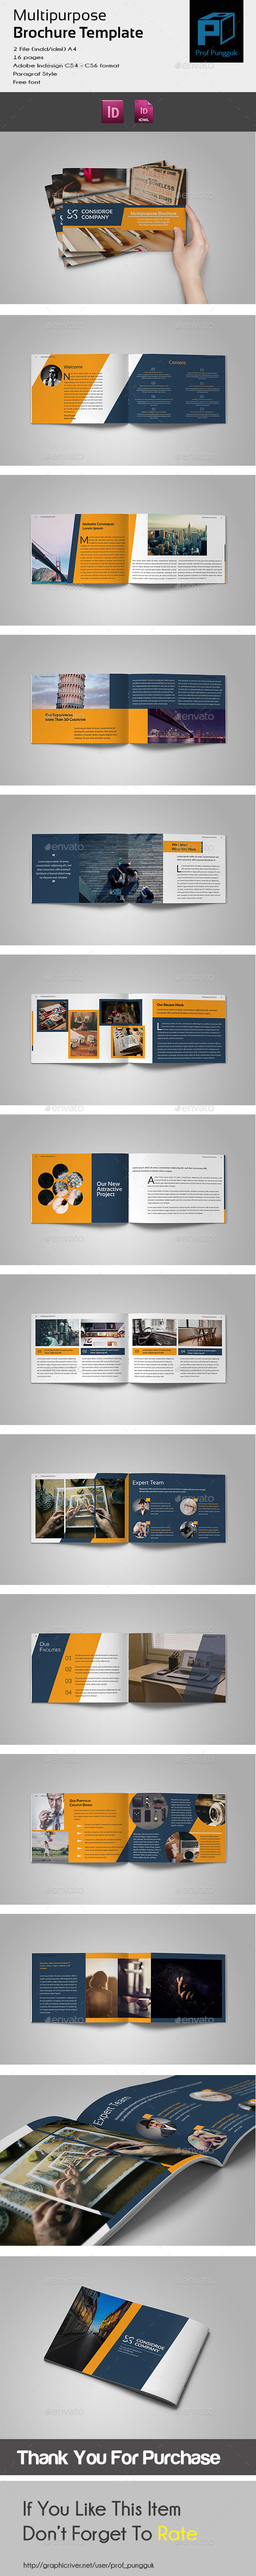 GraphicRiver Multipurpose Brochure A4 Landscape 10865413